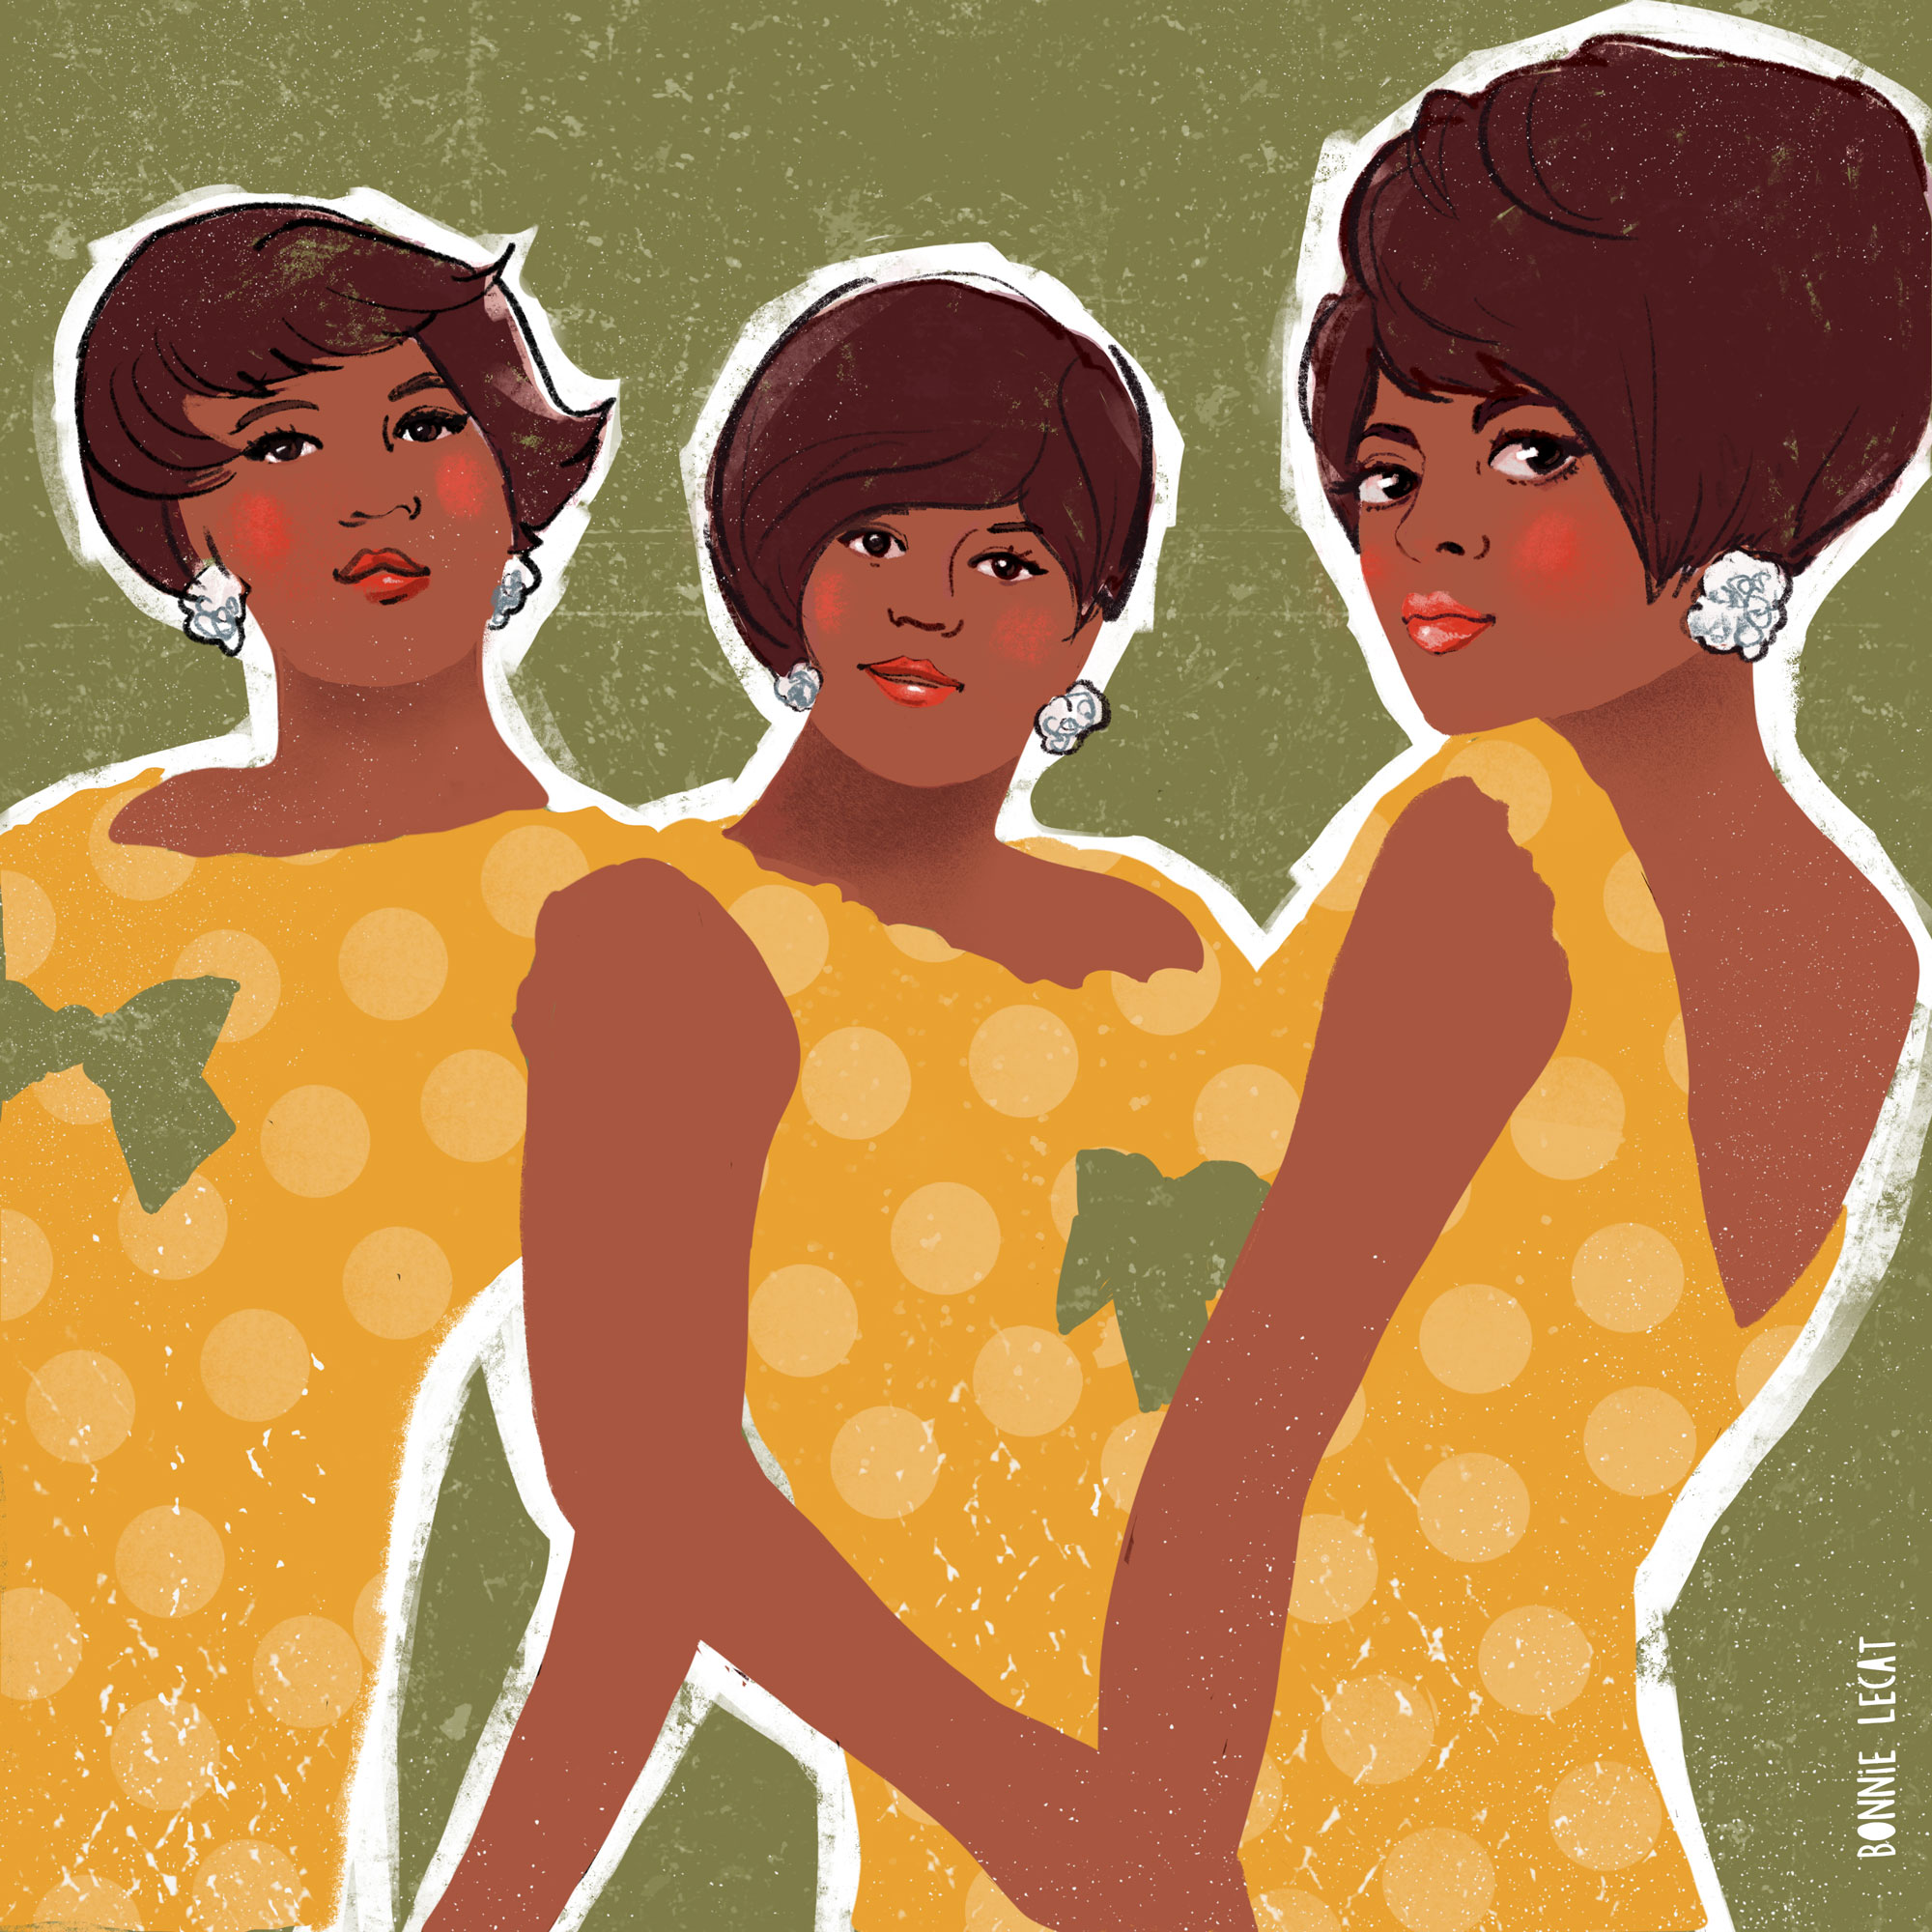 Diana Ross and the Supremes illustration by Bonnie Lecat.